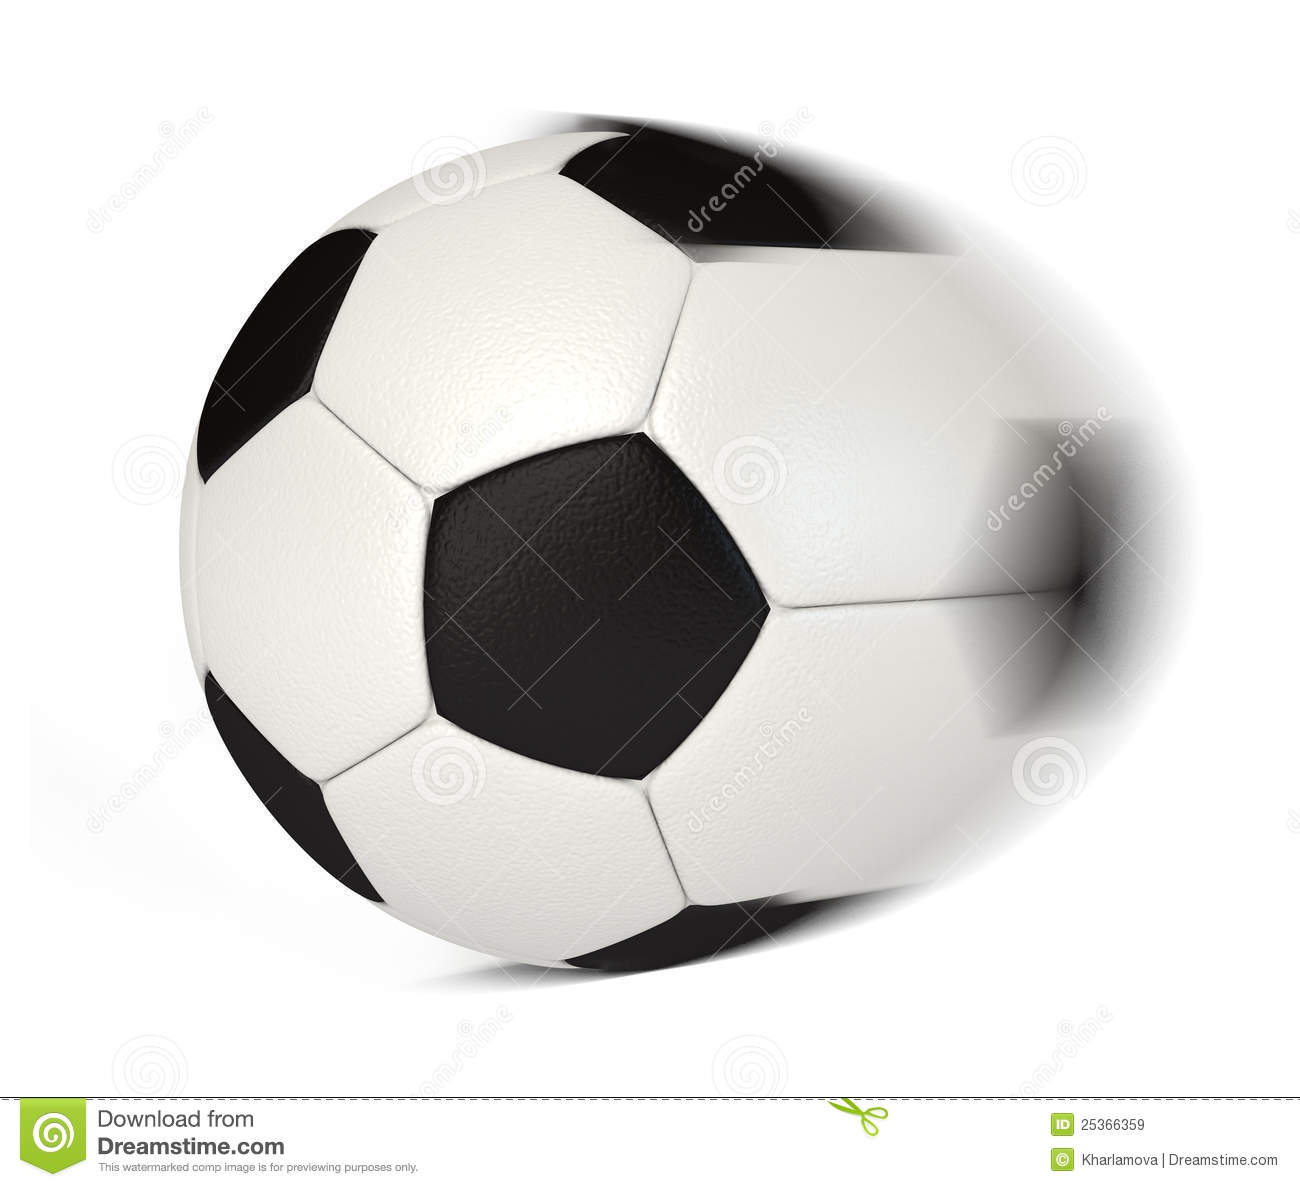 Soccer Ball In Motion Royalty Free Stock Images   Image  25366359